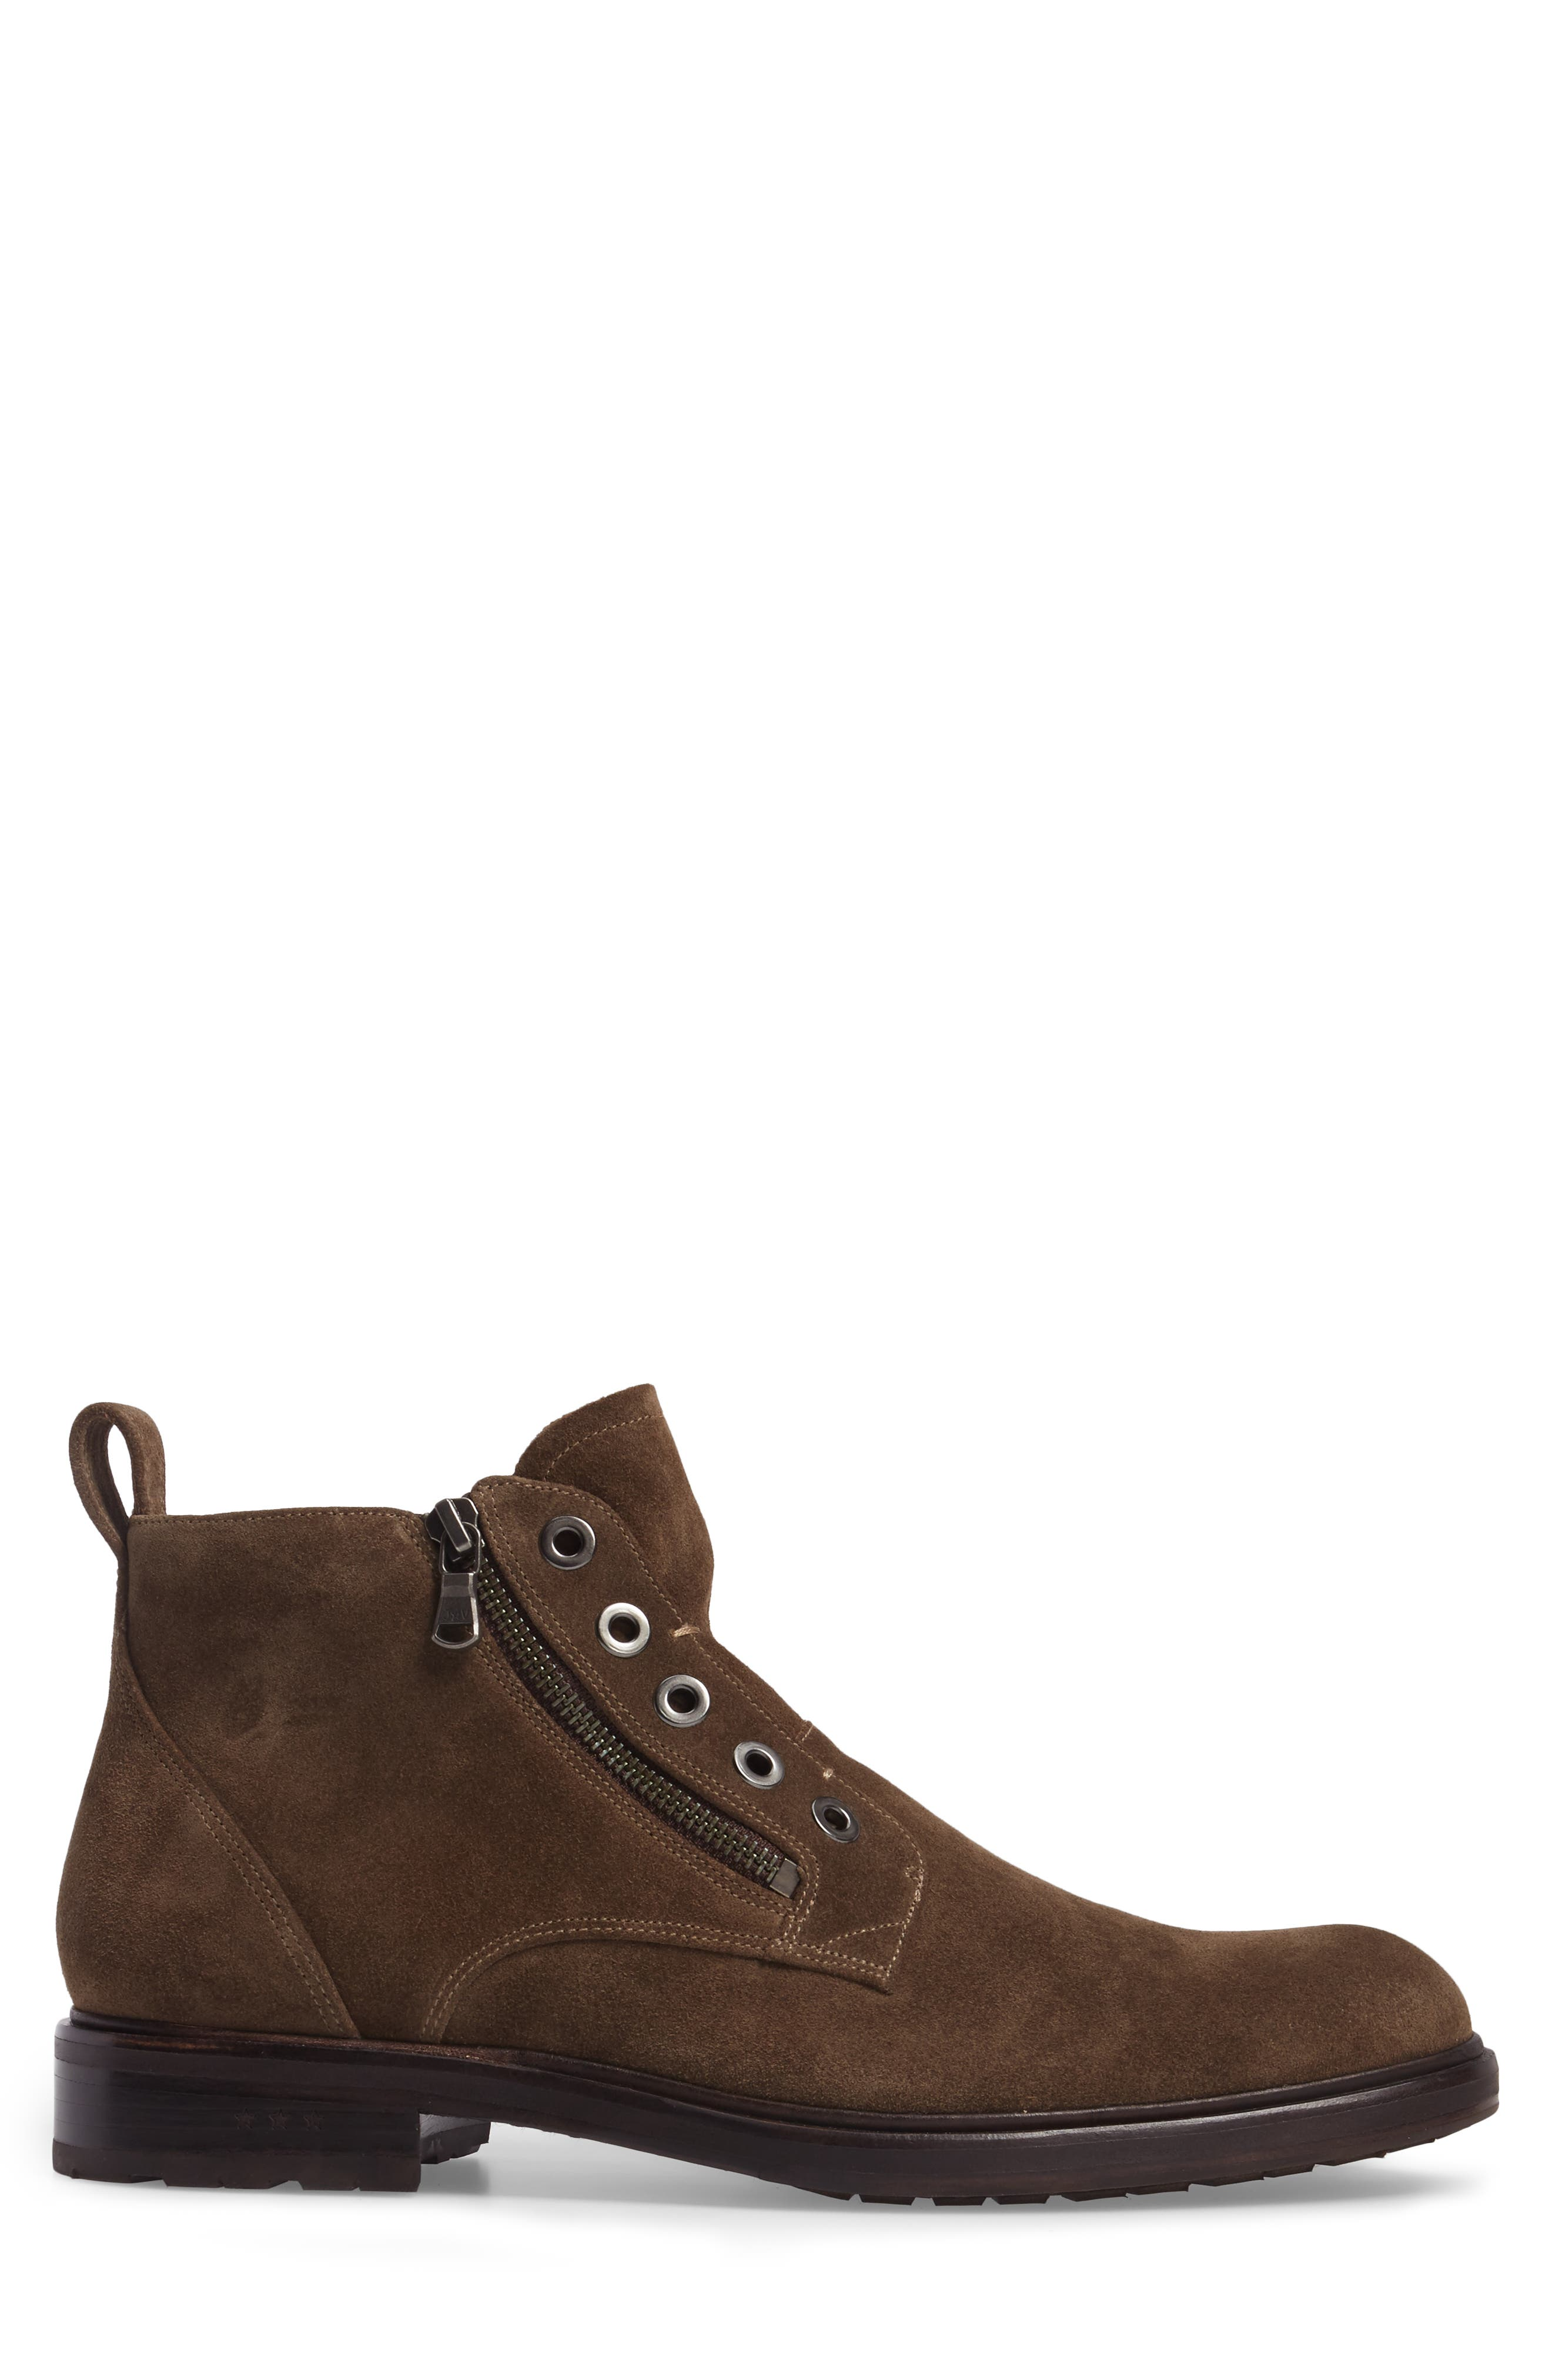 Star USA Waverley Zip Boot,                             Alternate thumbnail 3, color,                             248